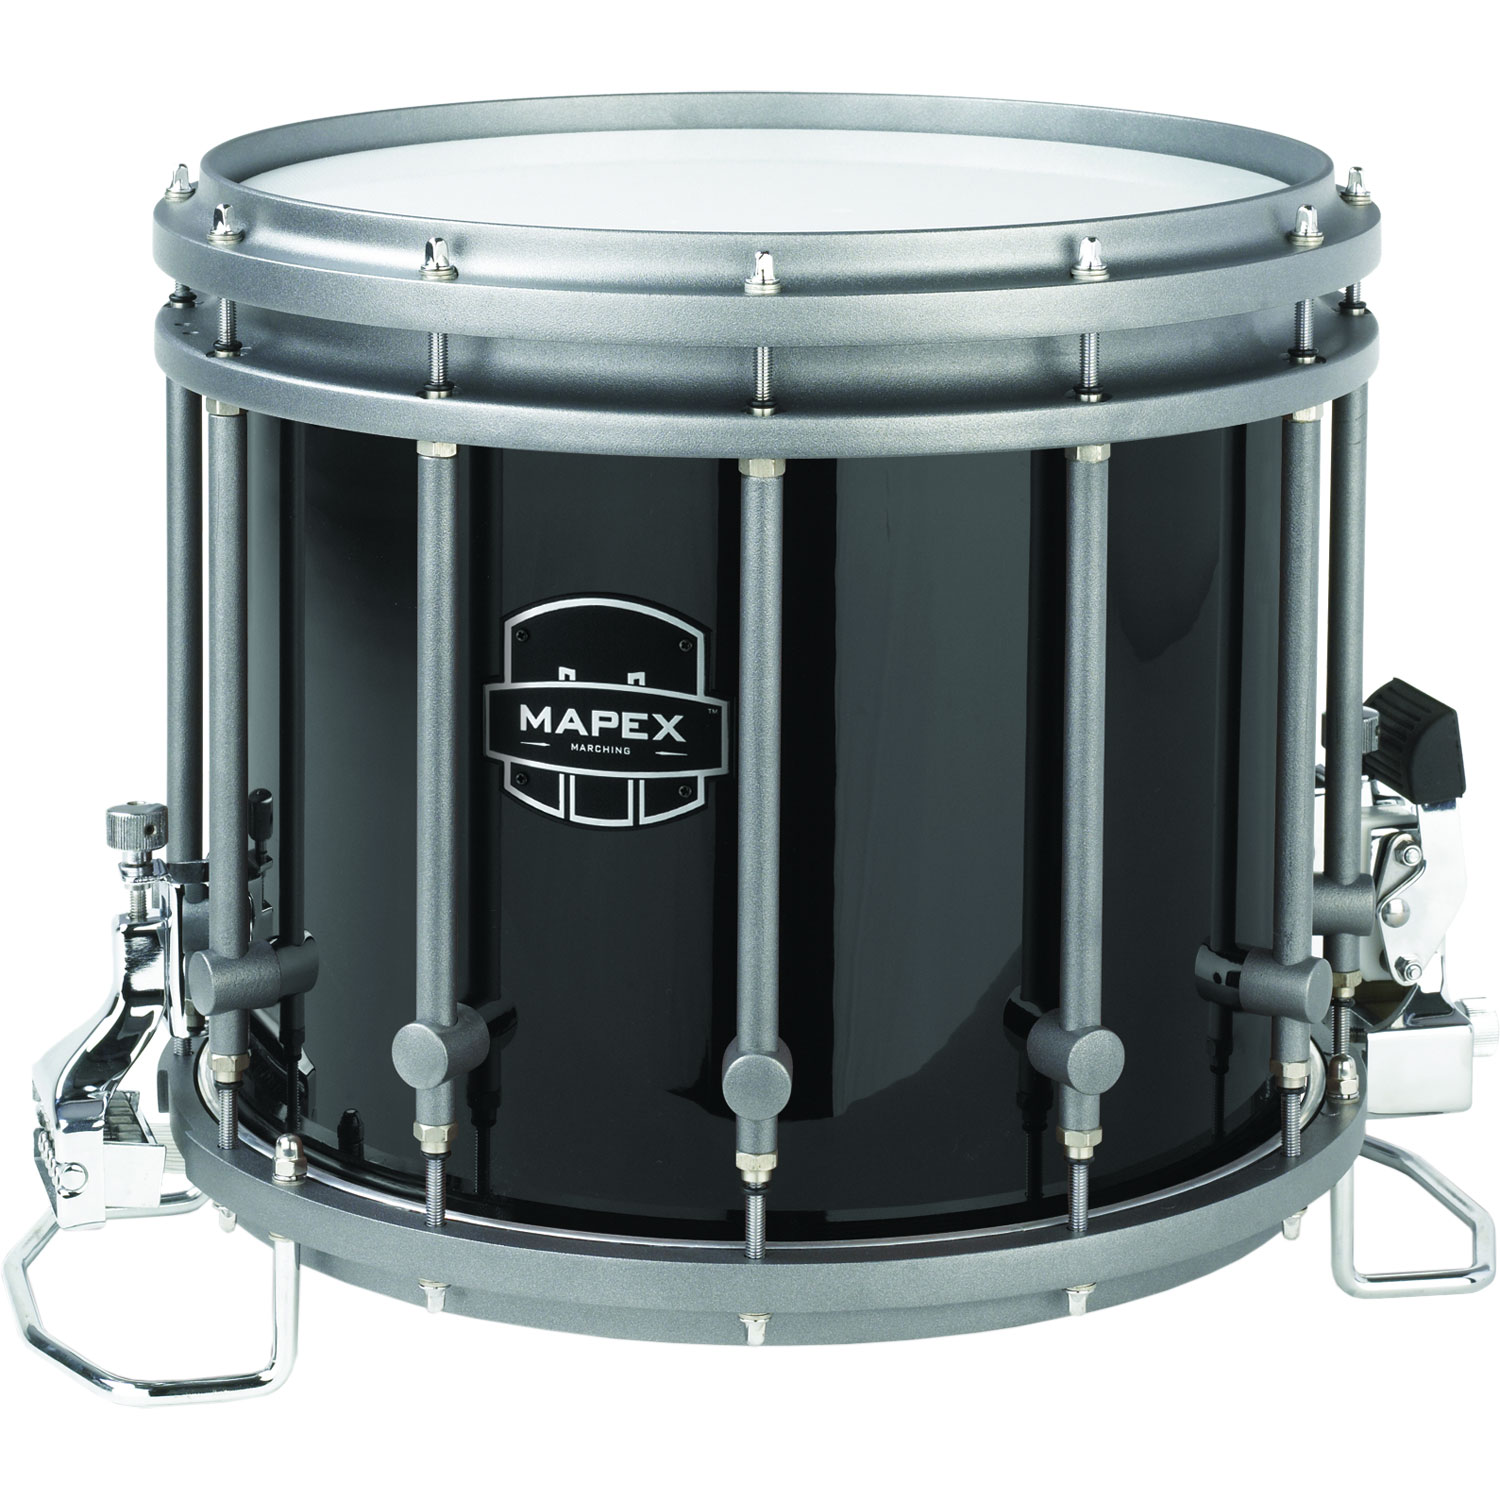 mapex 14 diameter x 12 deep quantum xt marching snare drum in gloss black qcx1412s bl gc. Black Bedroom Furniture Sets. Home Design Ideas